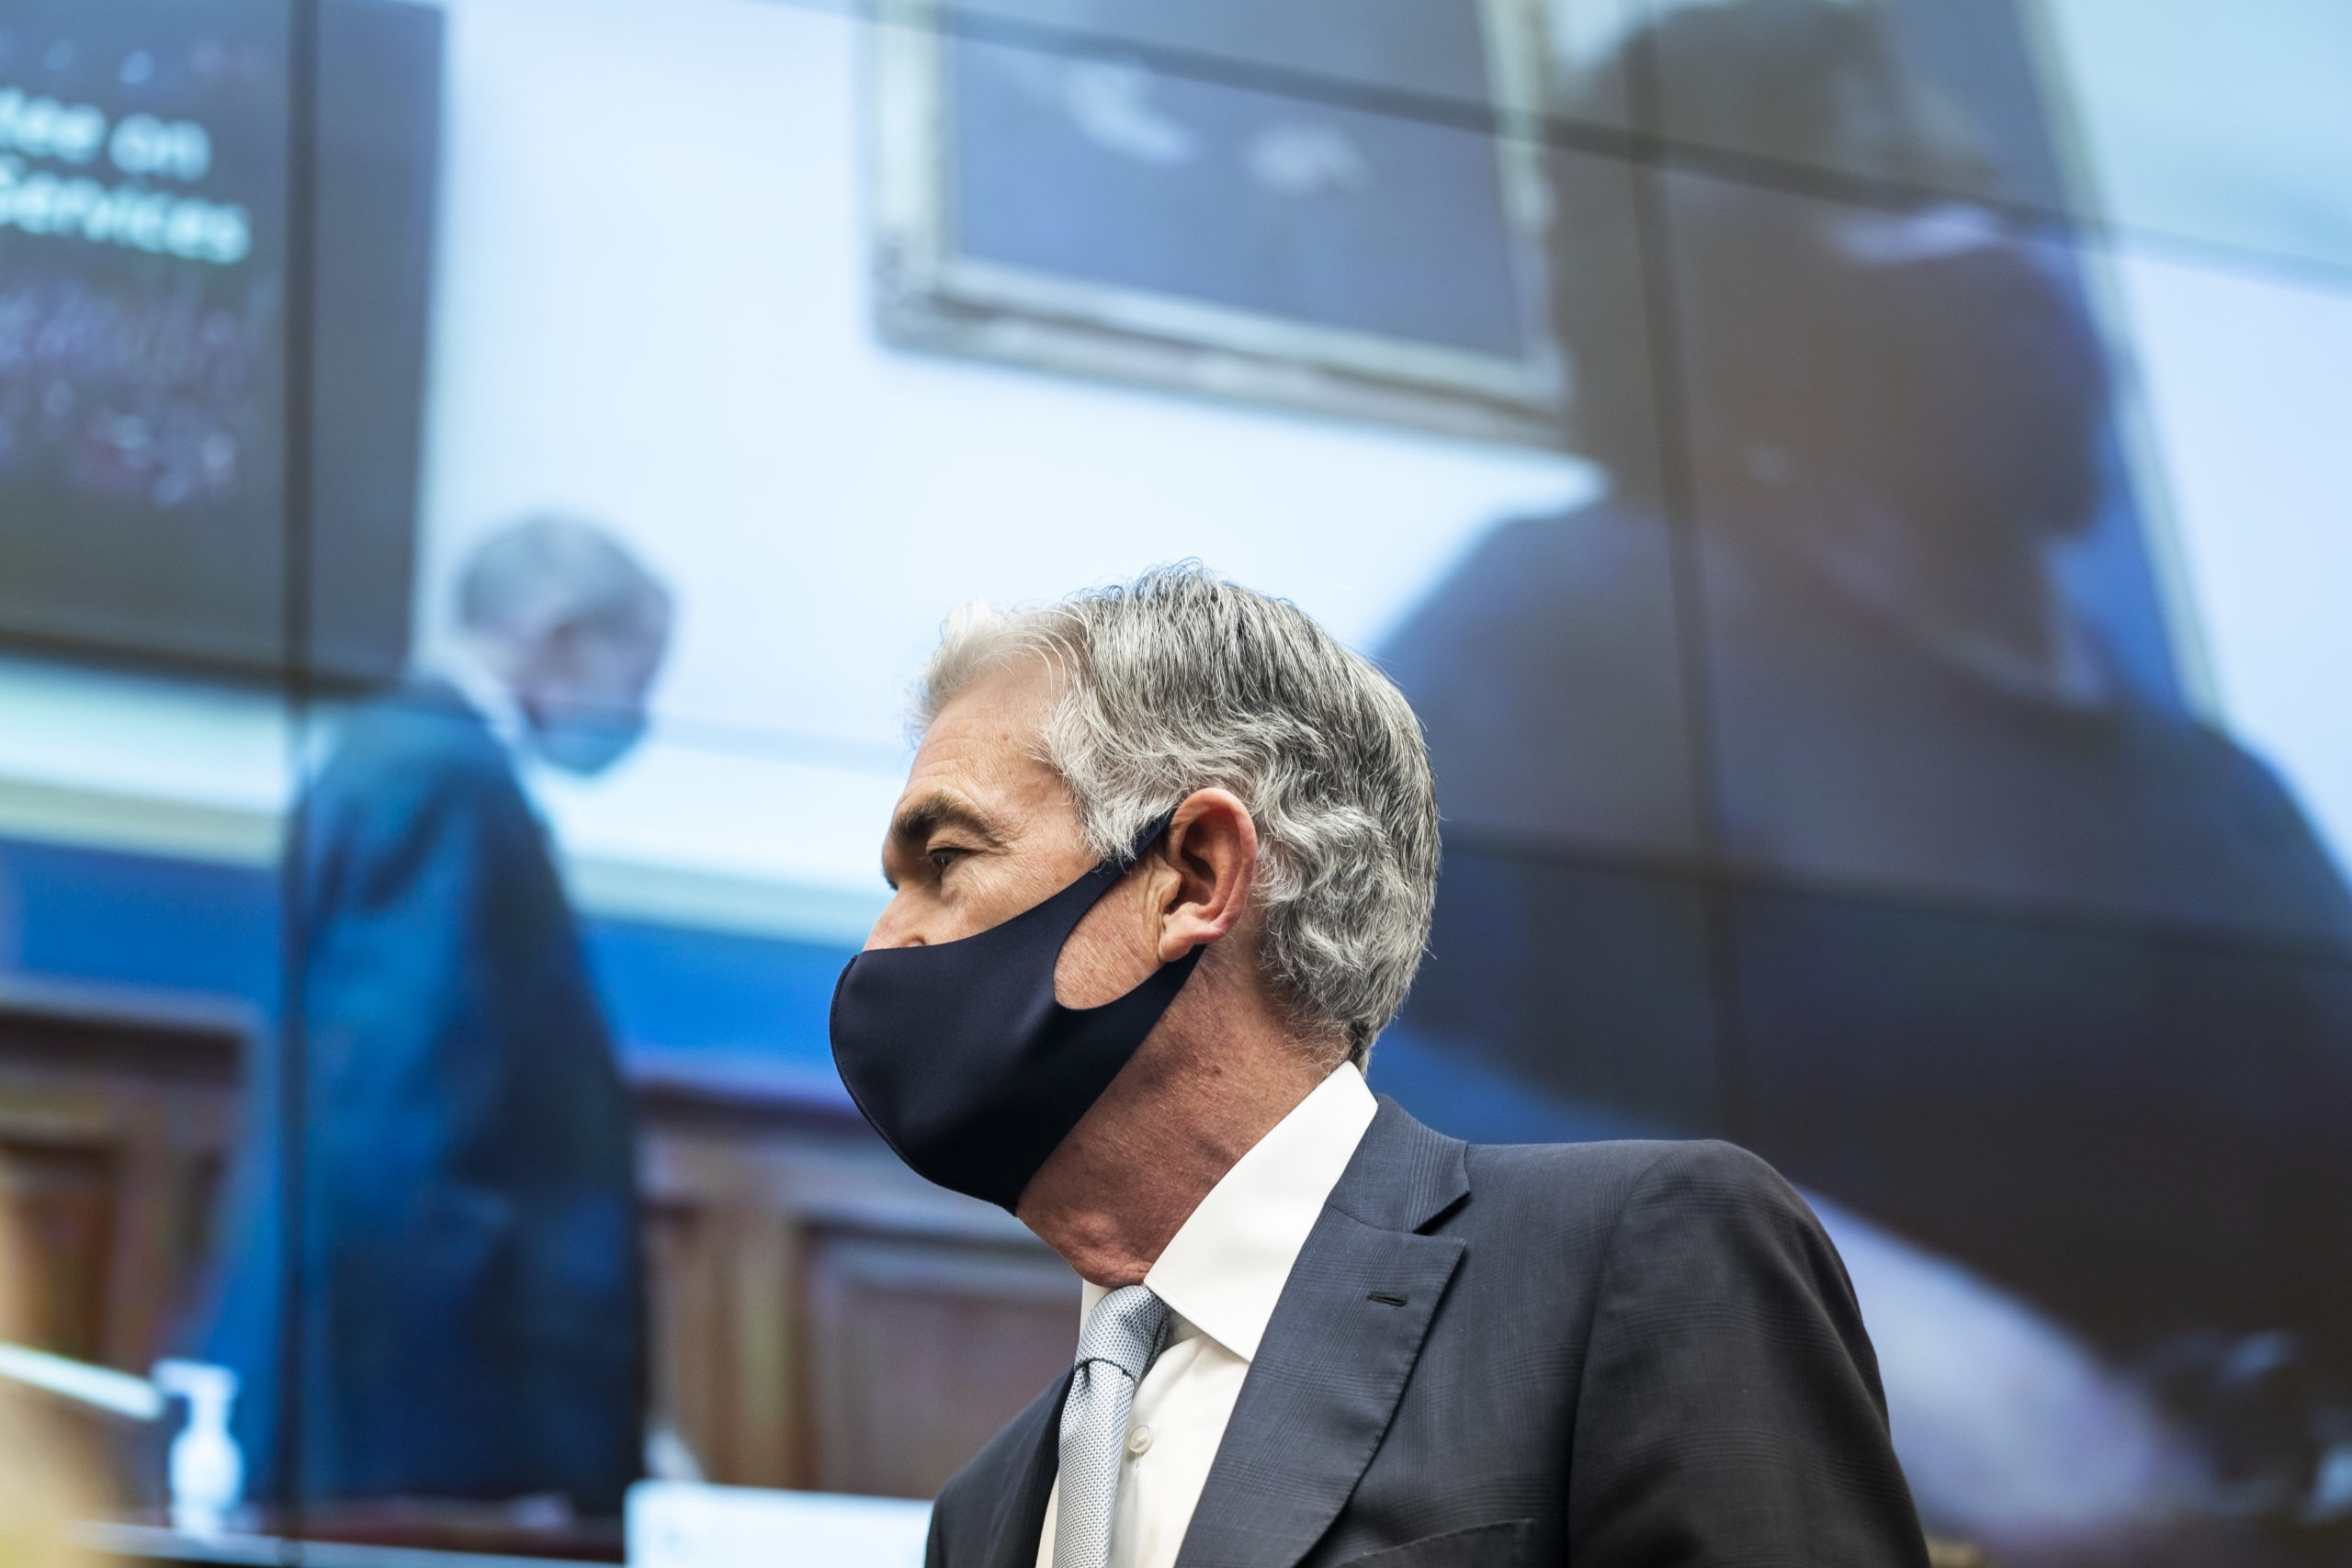 Federal Reserve Chair Jerome Powell prepares to speak at a hearing on Dec. 2. (Jim Lo Scalzo/Pool/Getty Images)